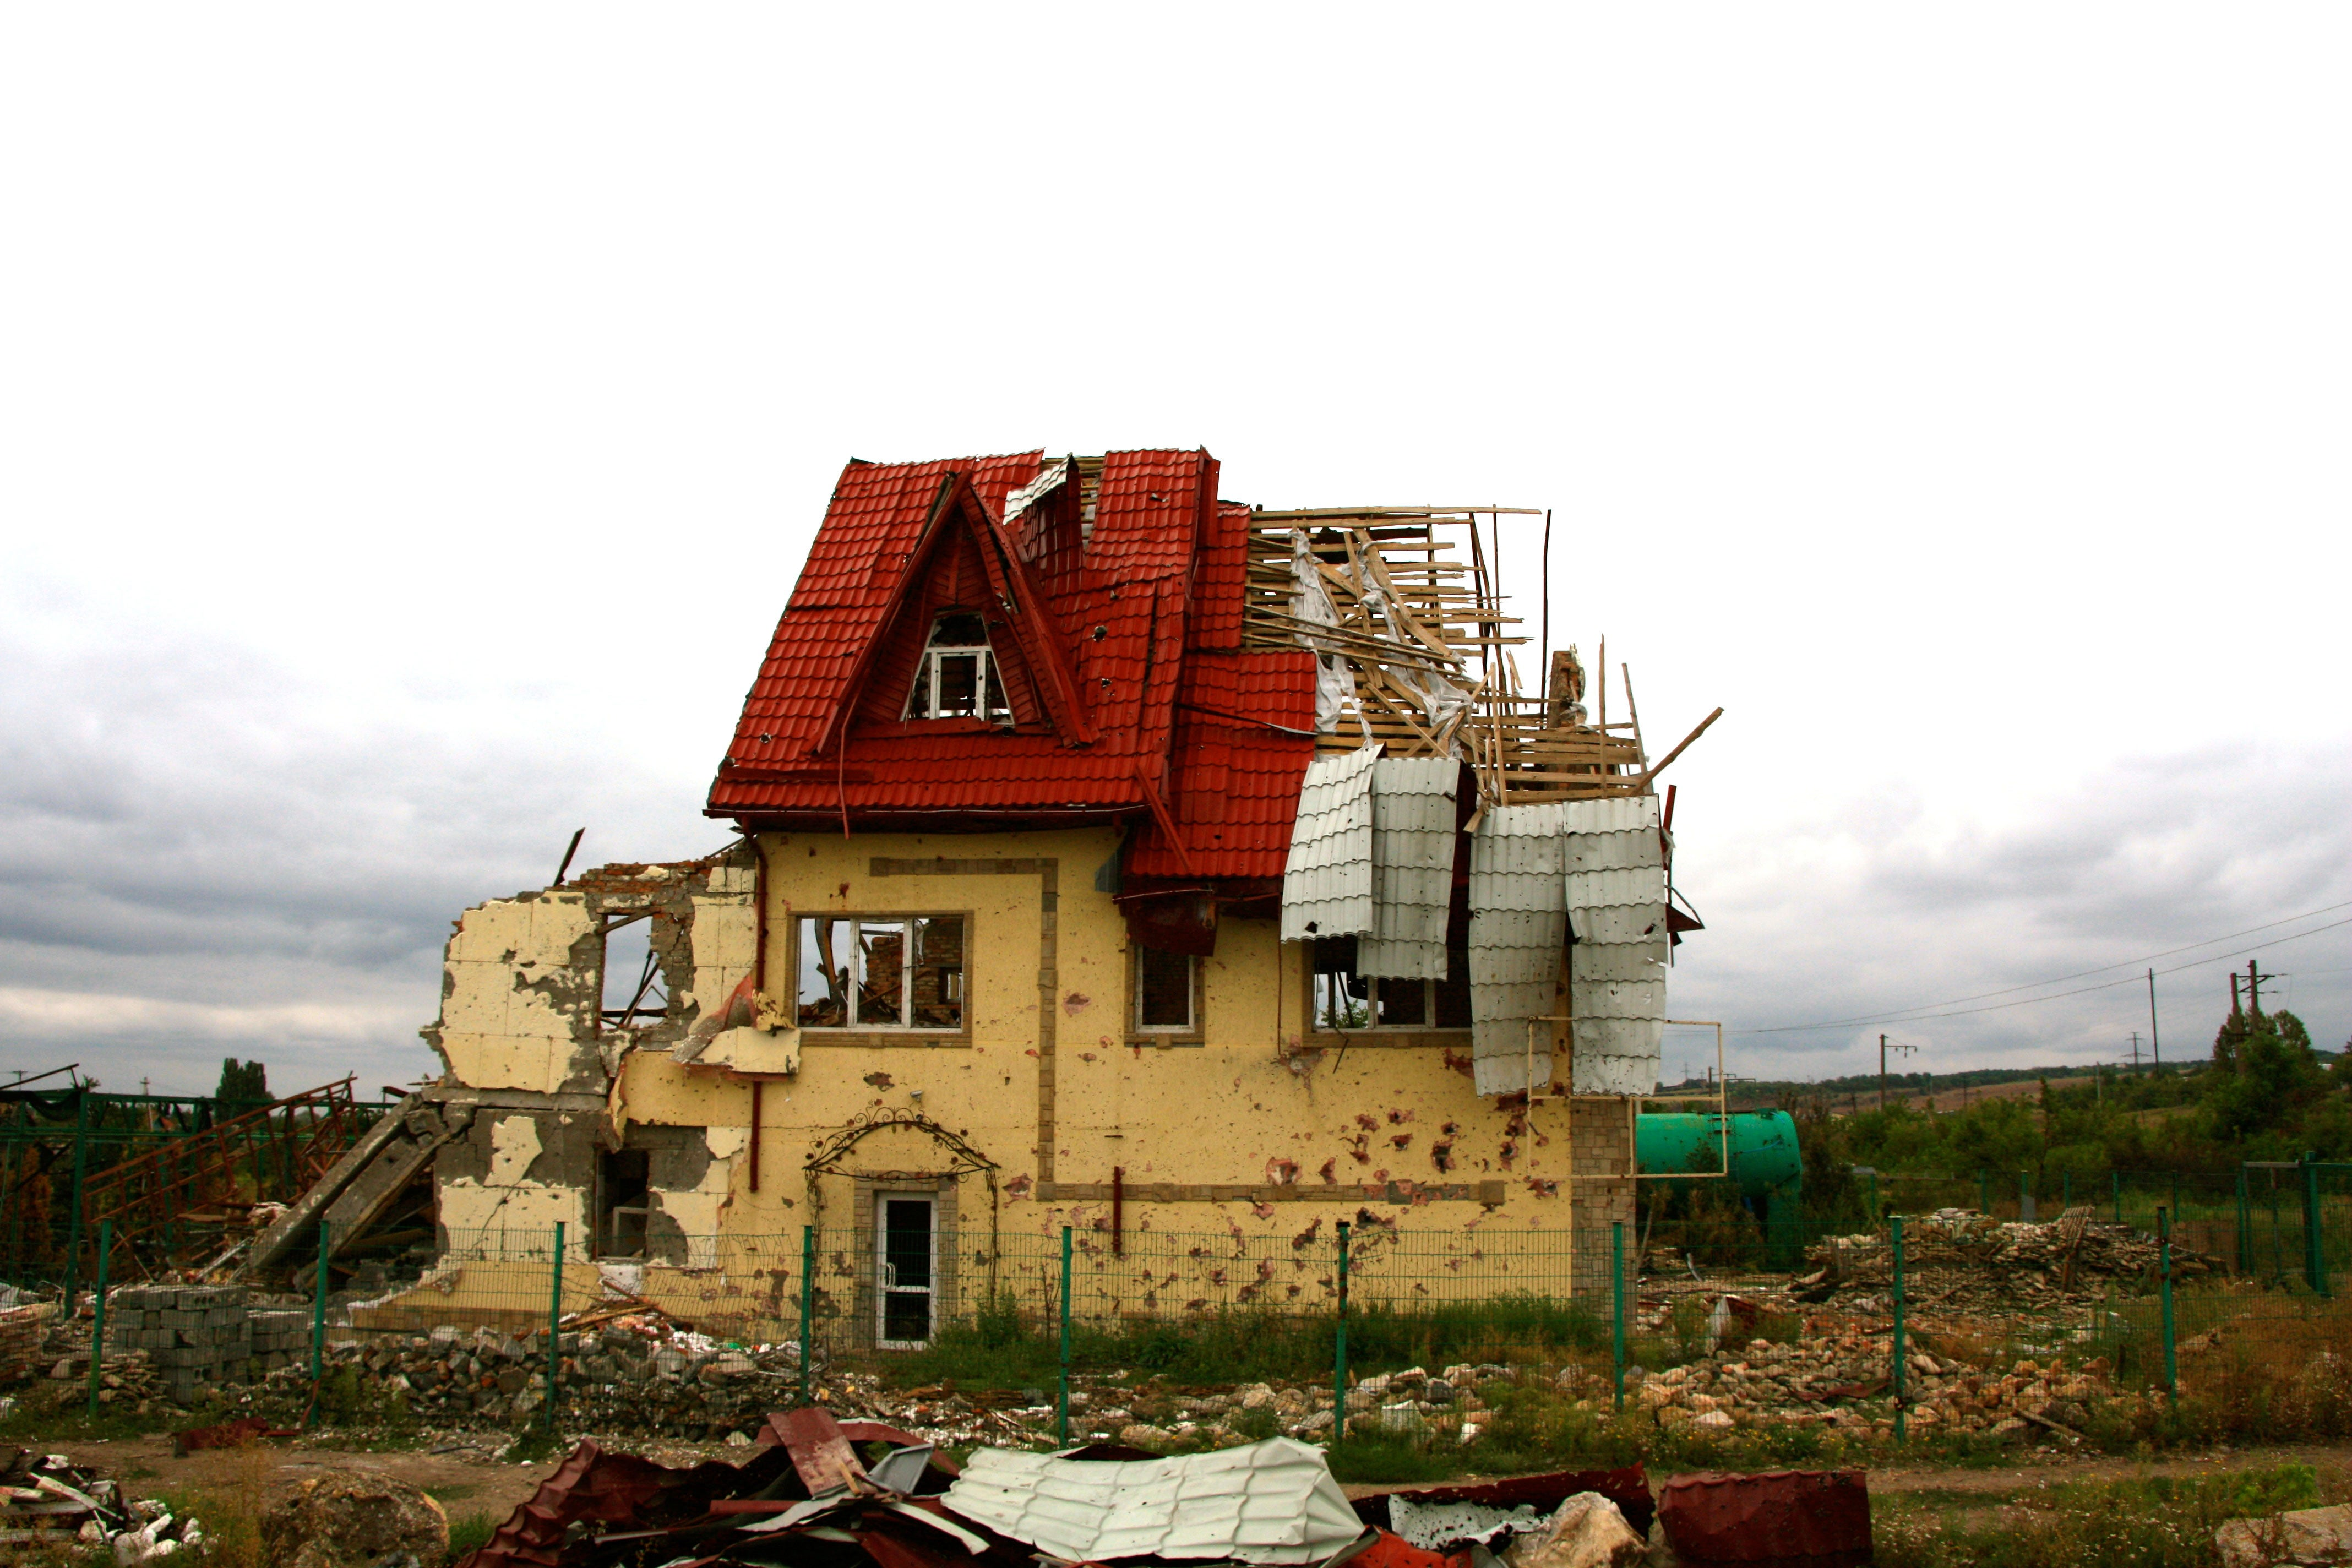 Many villages in eastern Ukraine remain destroyed ghost towns after more than two years of war.